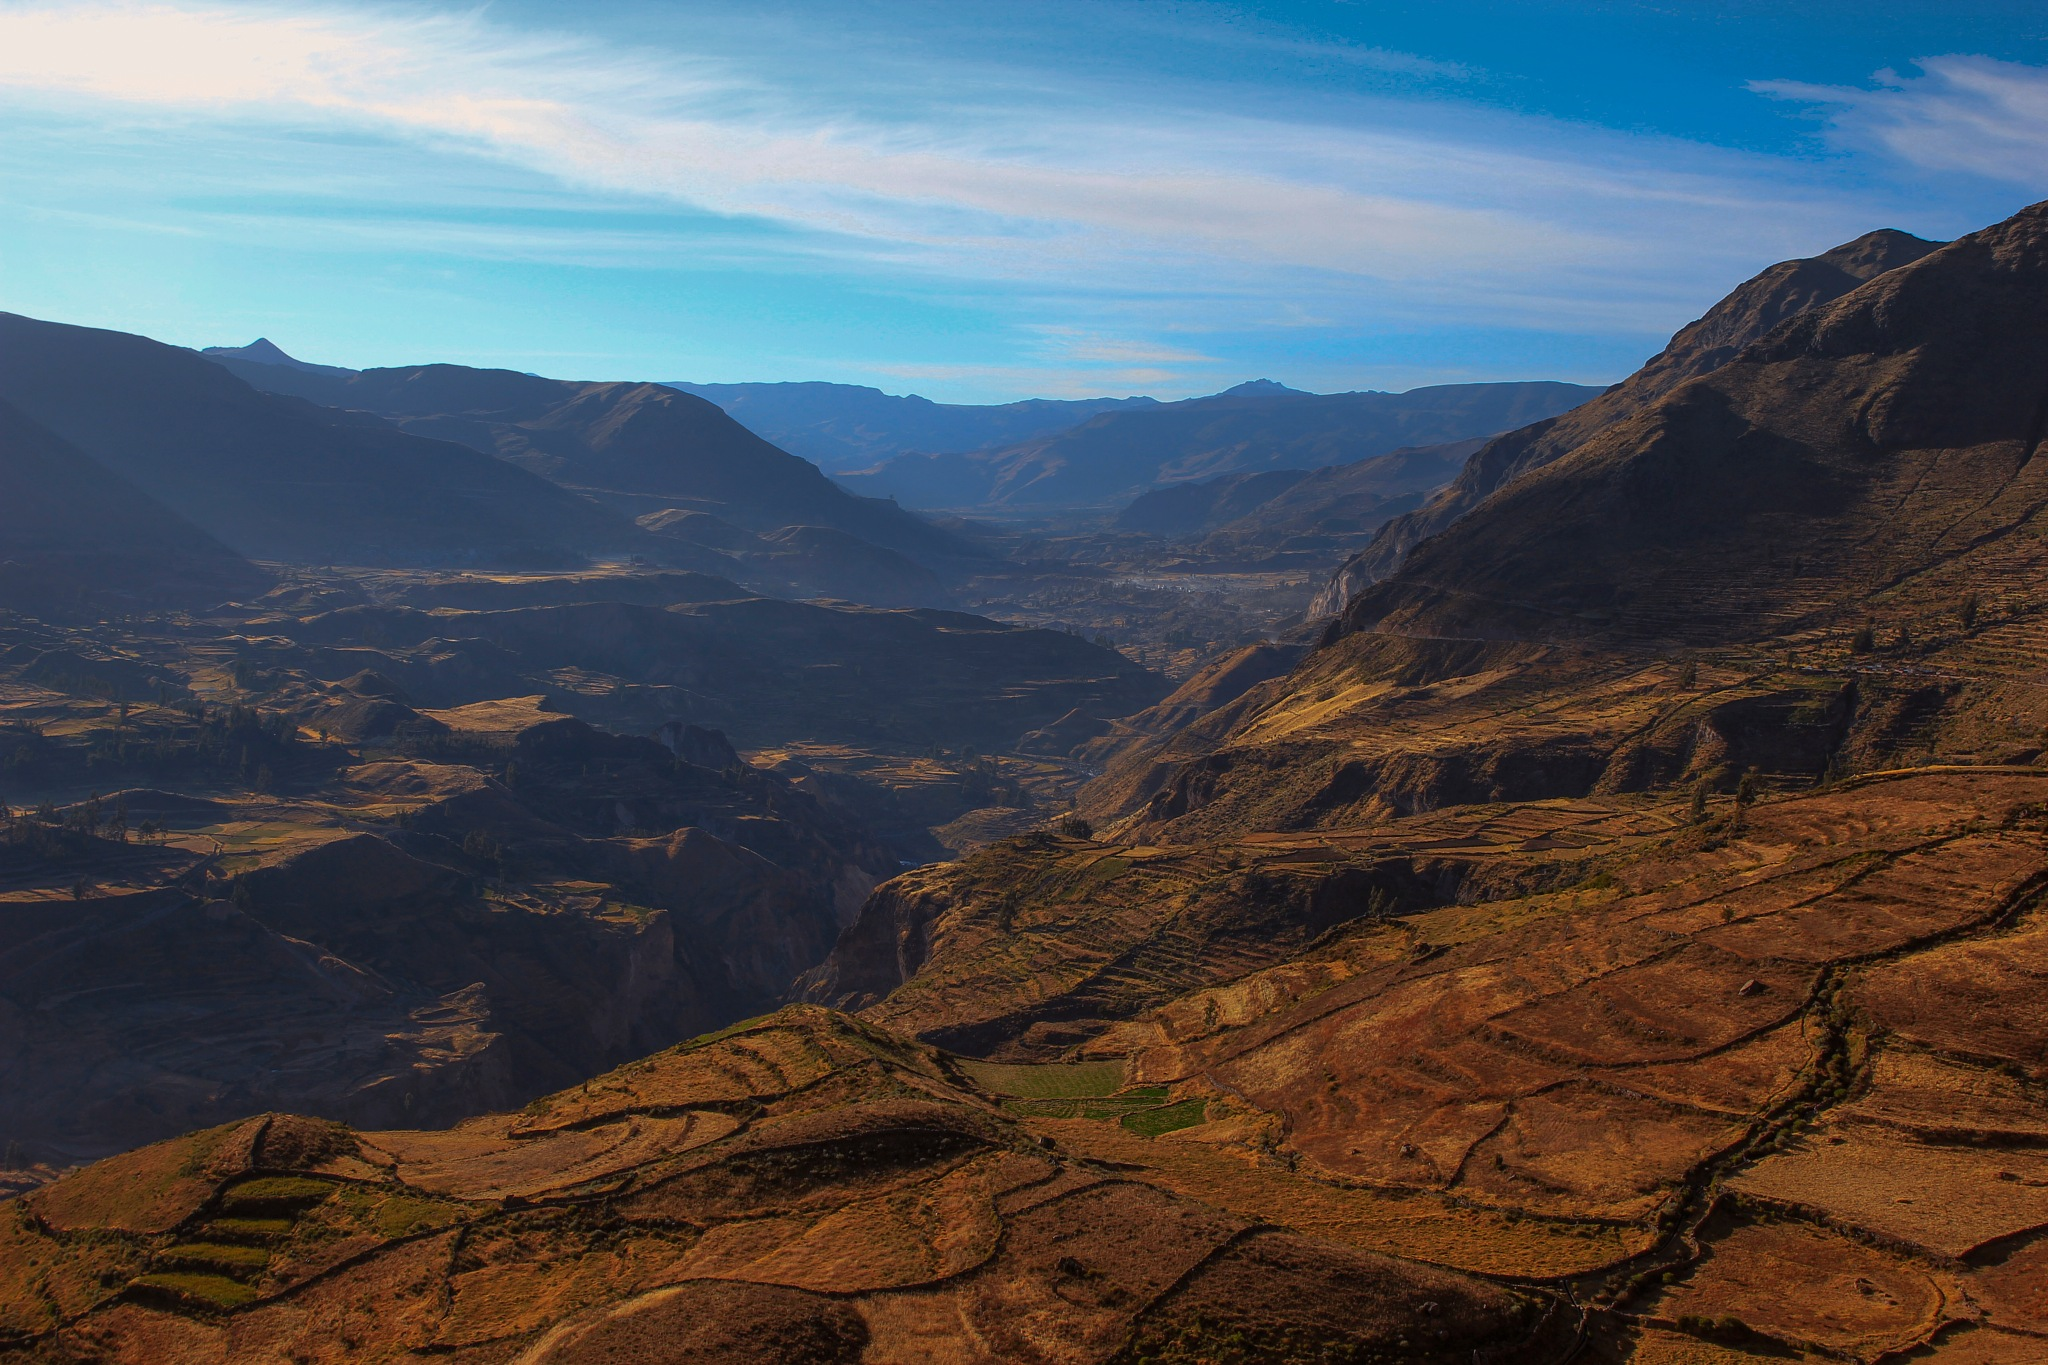 Colca Canyon by Luís Miguel